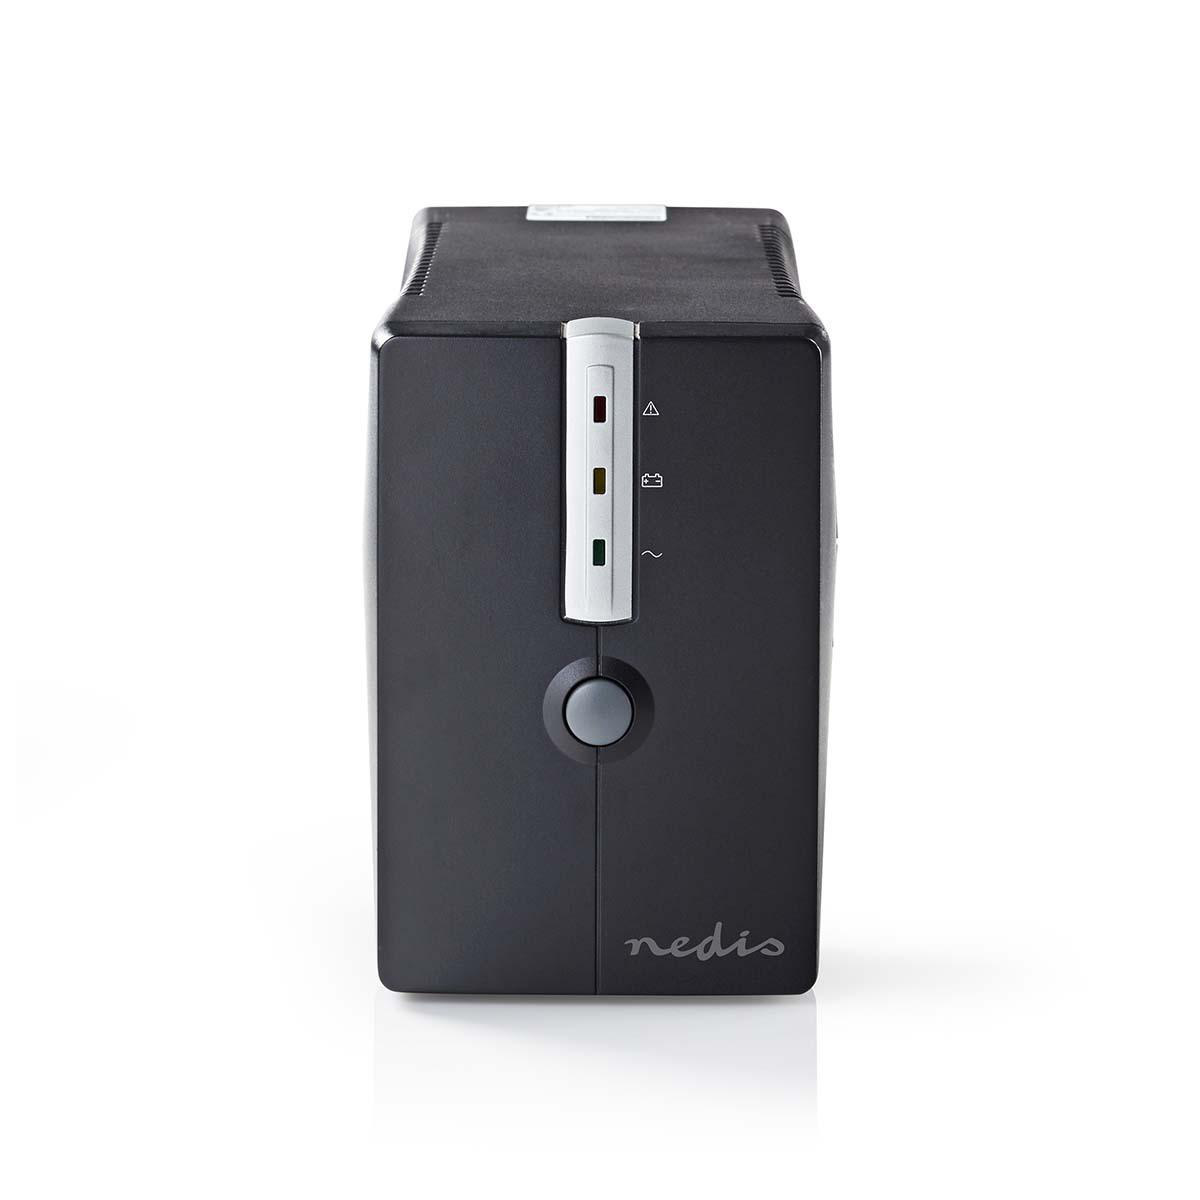 Protect your valuable computer and files against power outages and power surges with this powerful 650A UPS. The built-in battery gives you 10 minutes to save files and to shut down the computer properly during a power failure. With the monitoring softwar